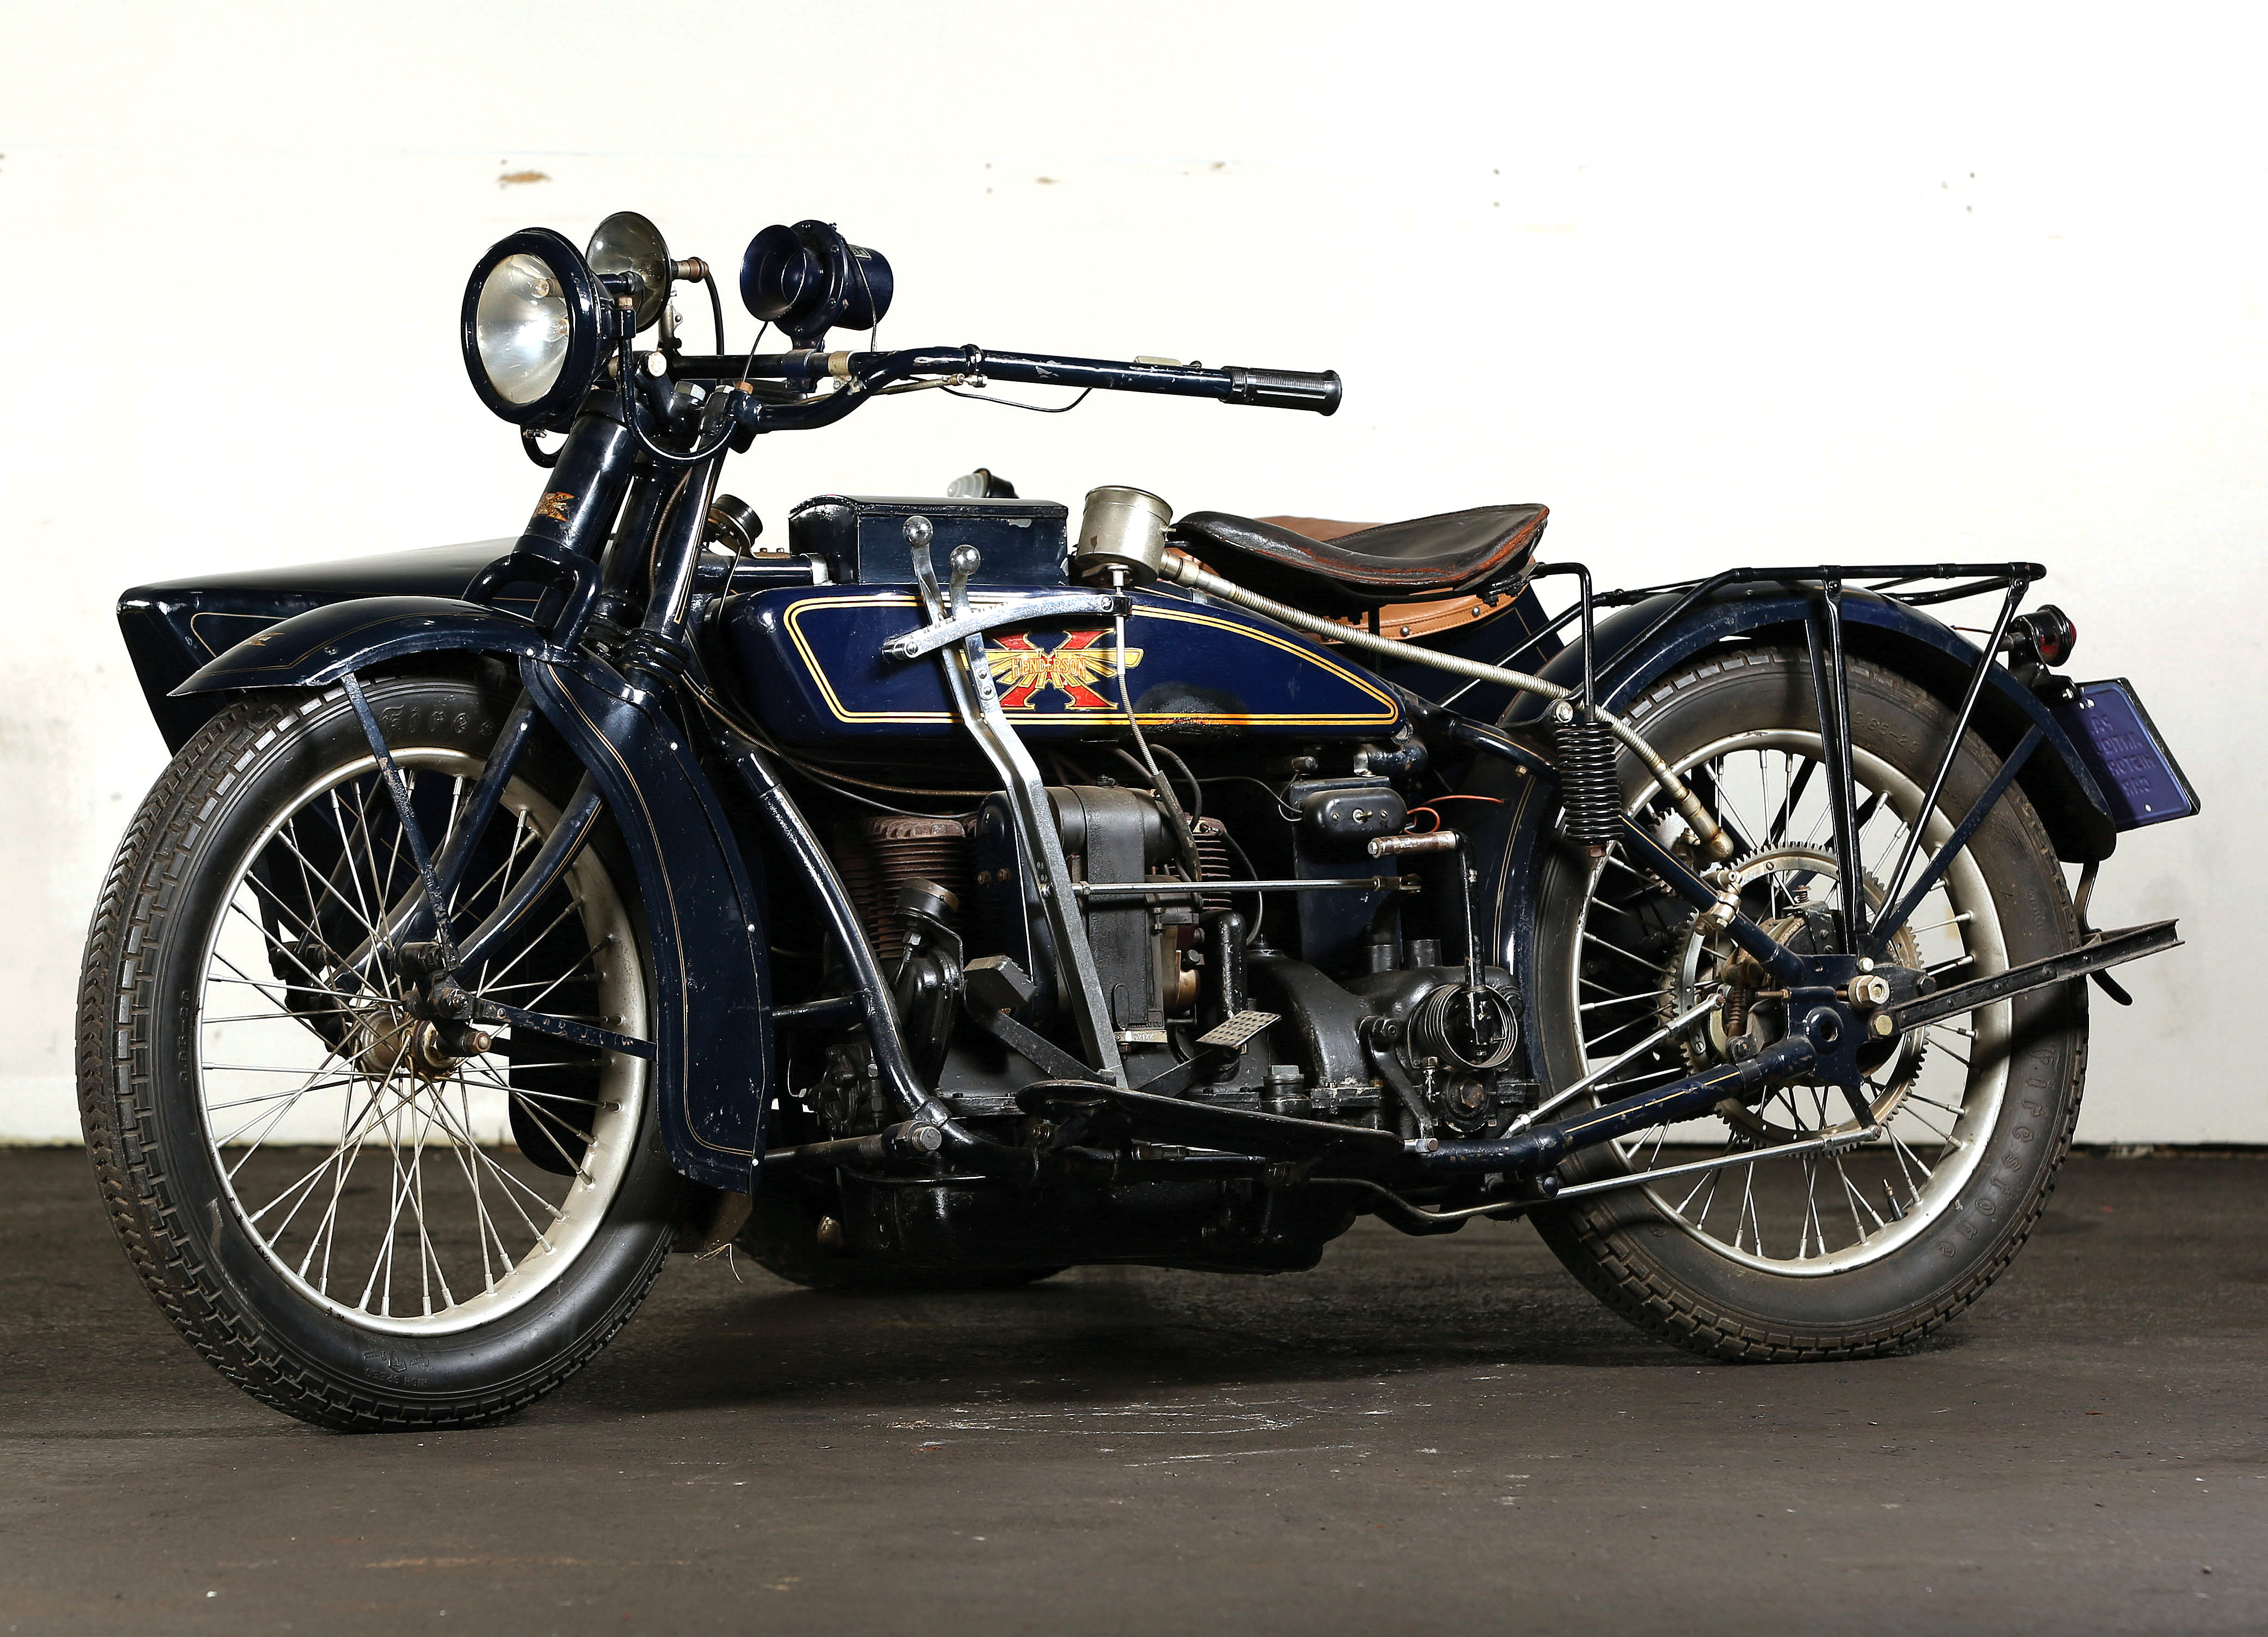 history of motorcycles Ama vintage motorcycle days benefits the ama's motorcycle hall of fame museum the goal of the museum, located on the campus of the ama in pickerington, ohio, is to tell the stories and preserve the history of motorcycling.